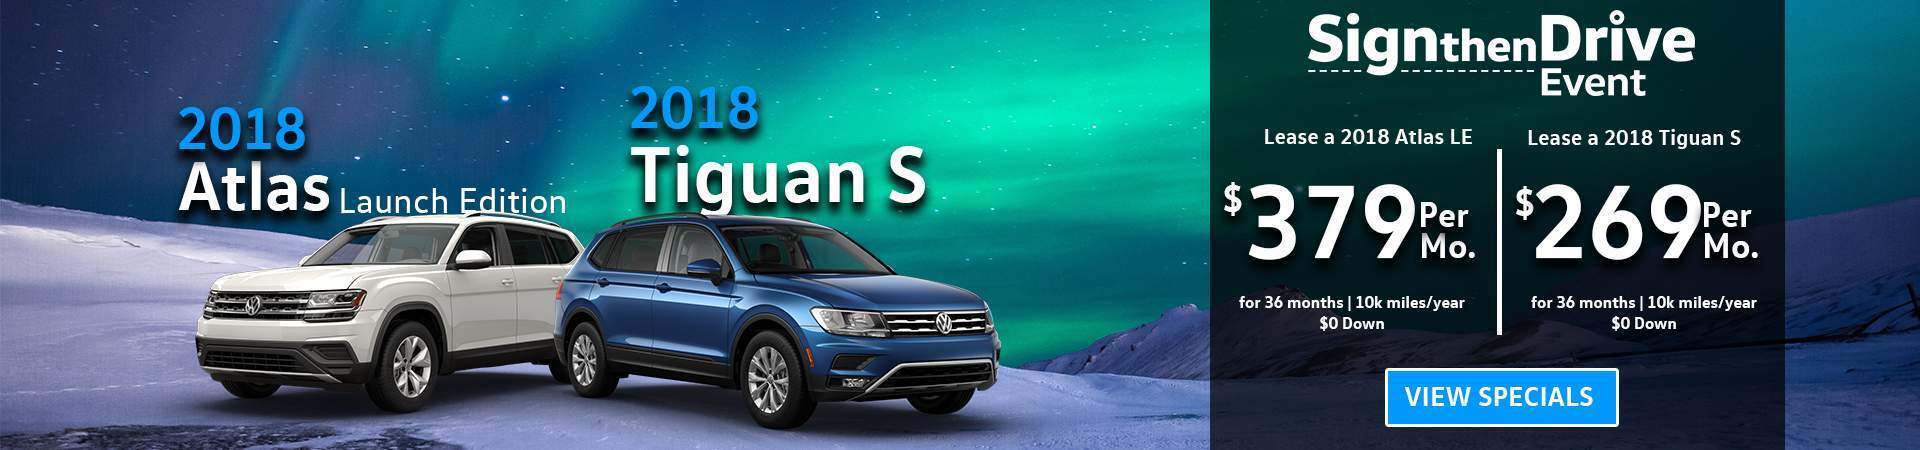 Atlas and Tiguan December Specials-Updated Pricing